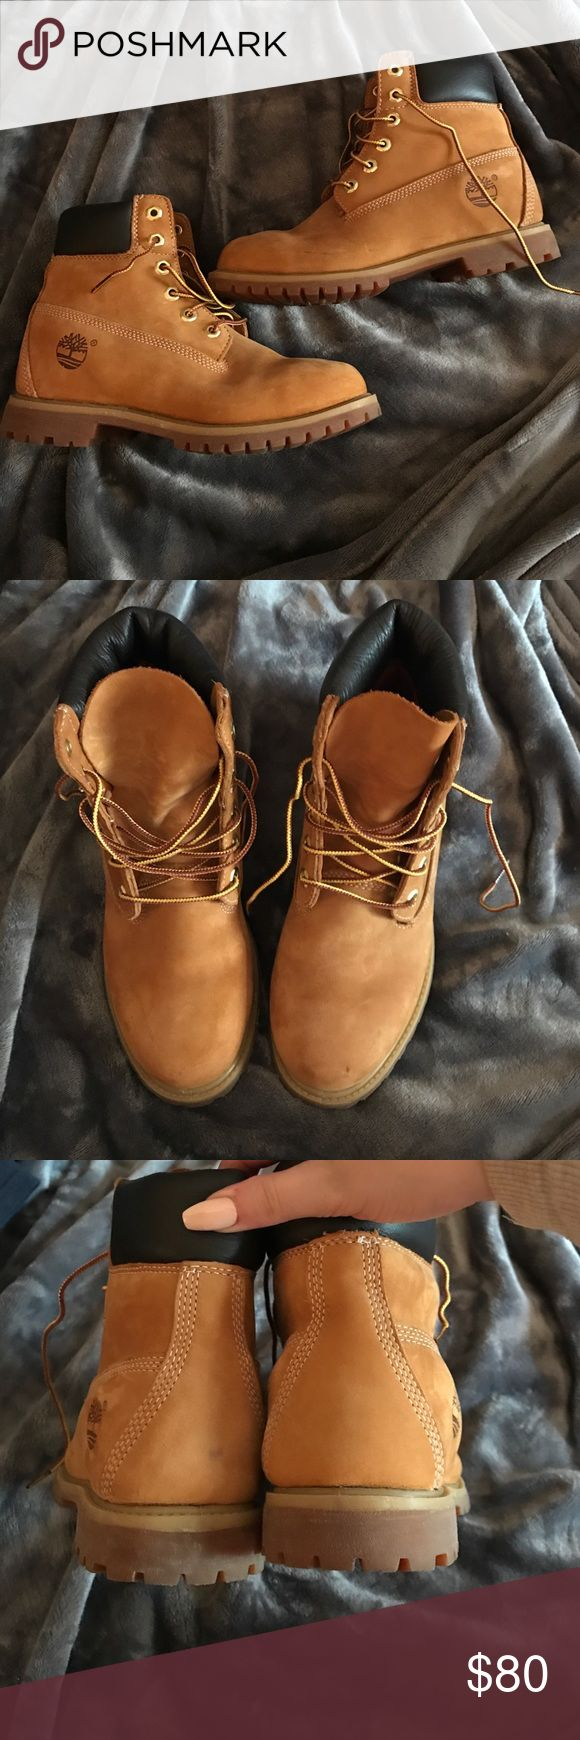 Great condition wheat timberland boots size 8 Awesome condition. Barely ever worn. Timberland Shoes